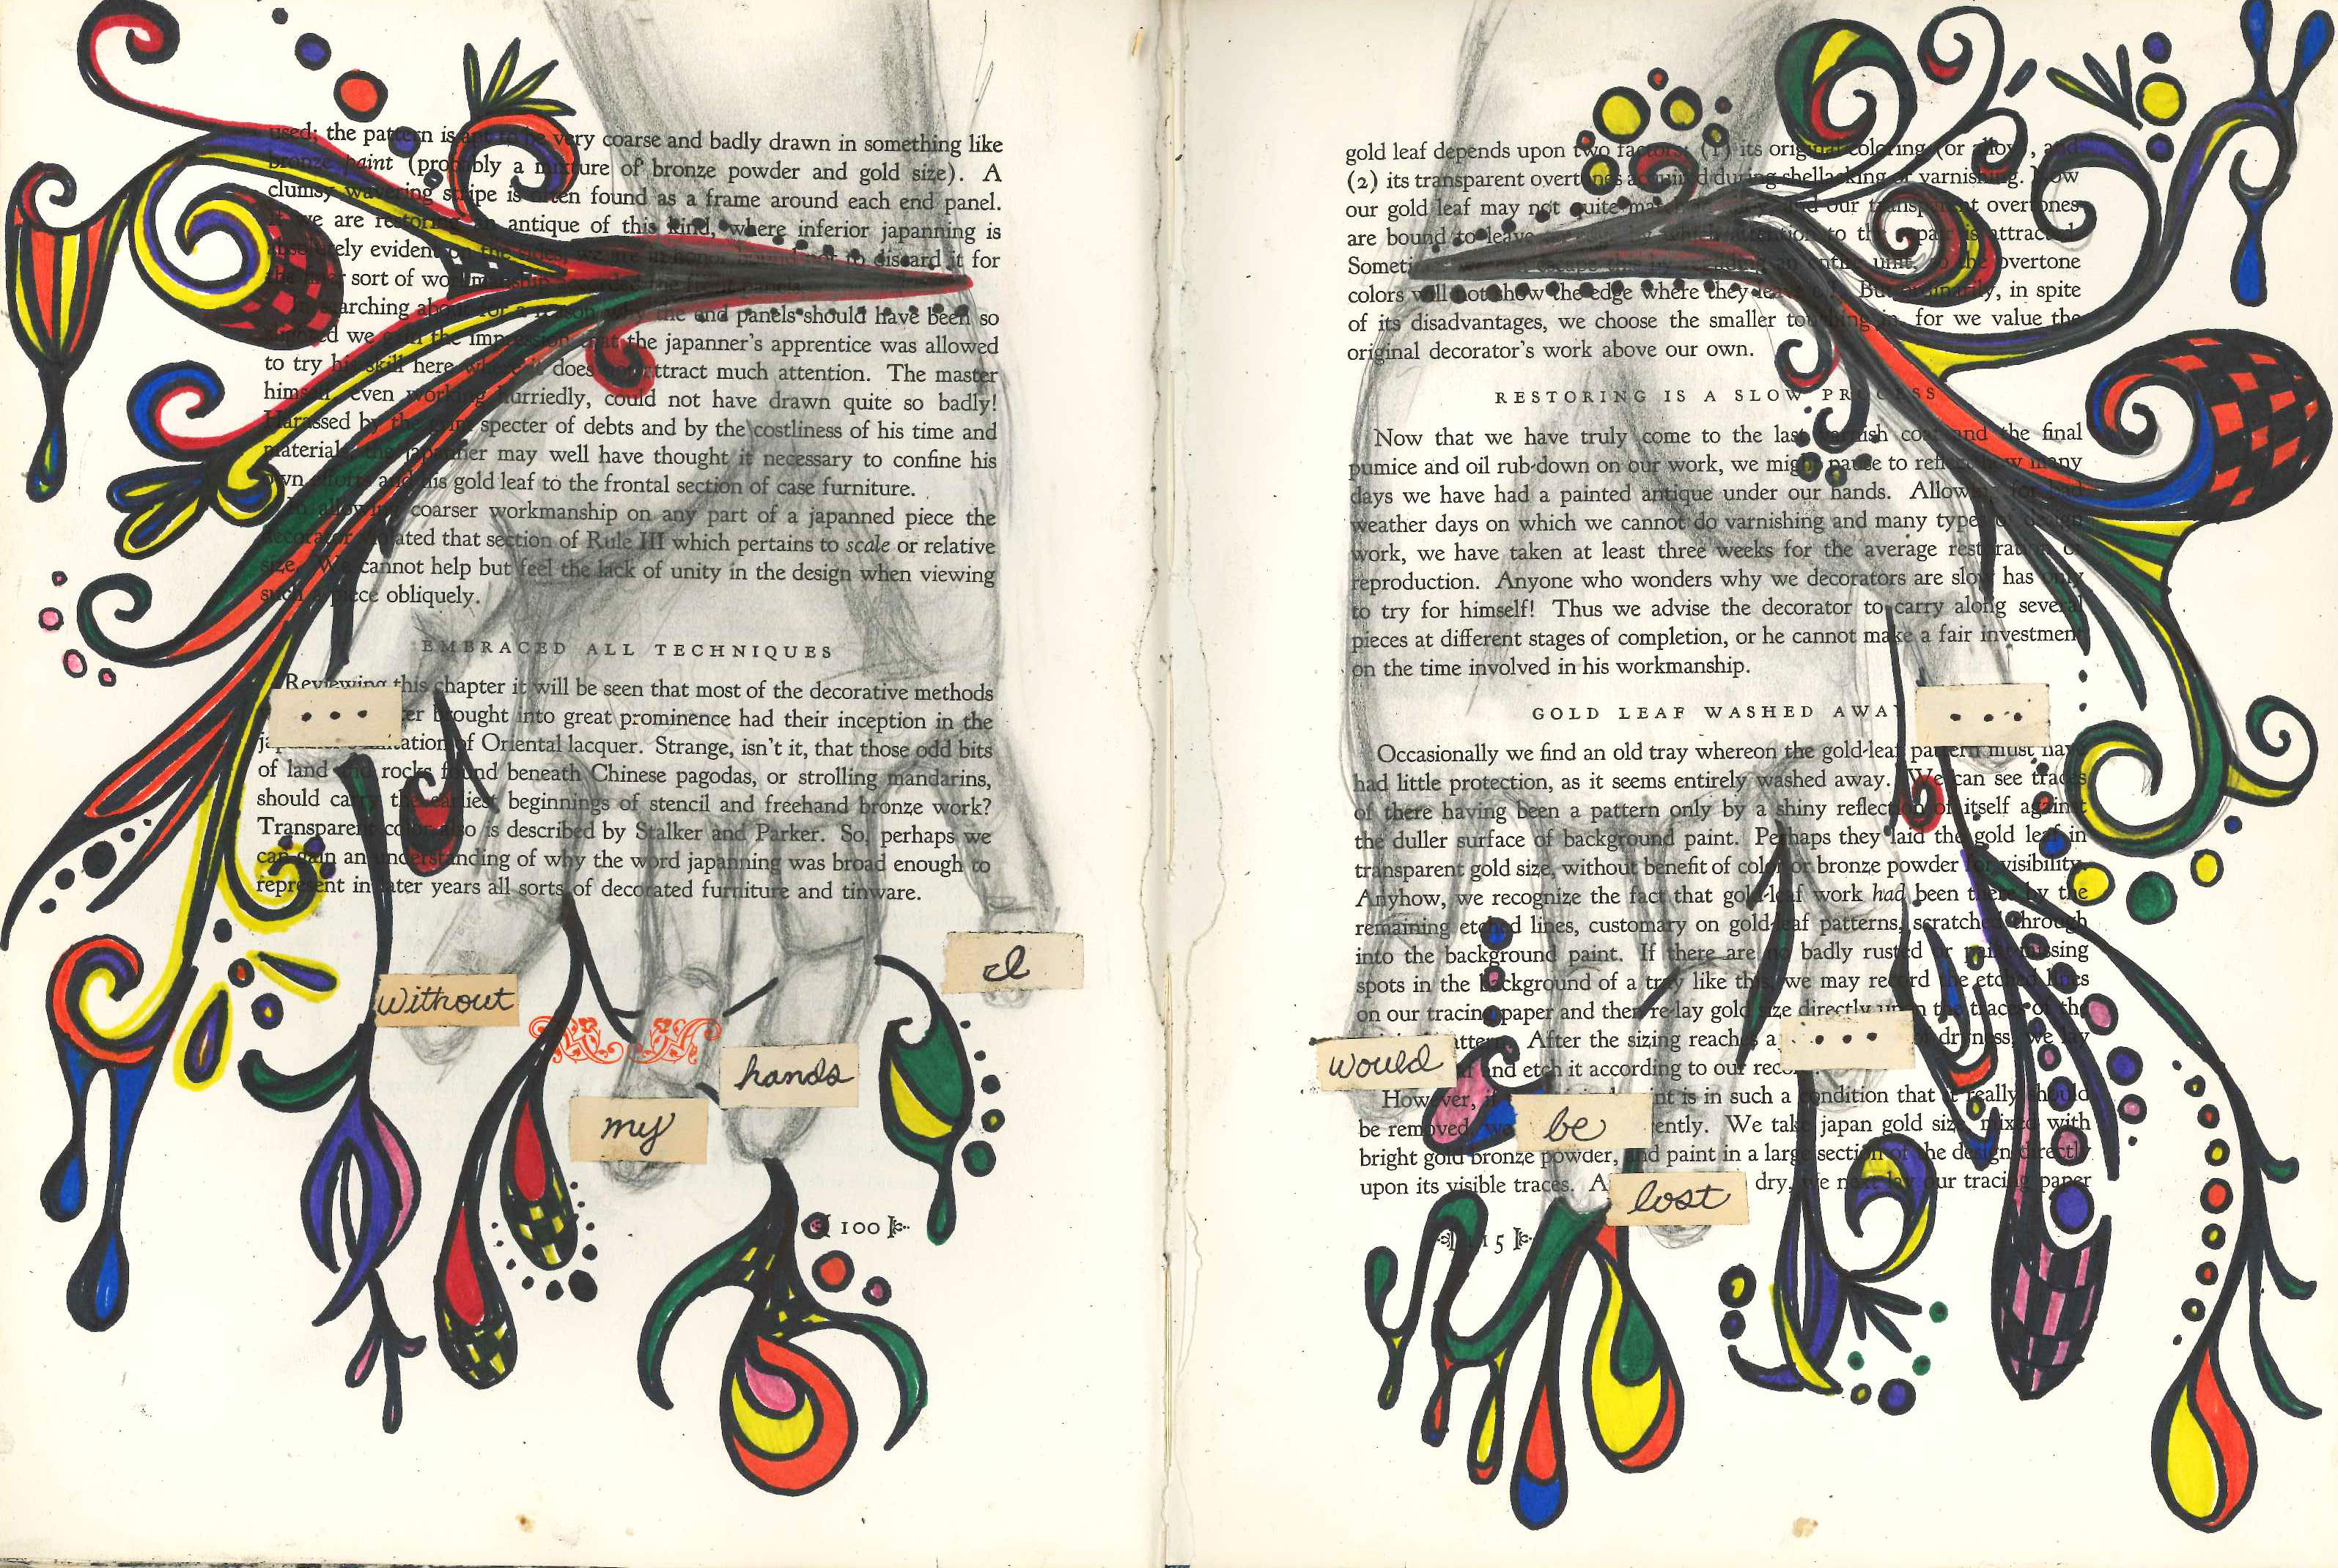 Visual Journal Page 10: My Hands on